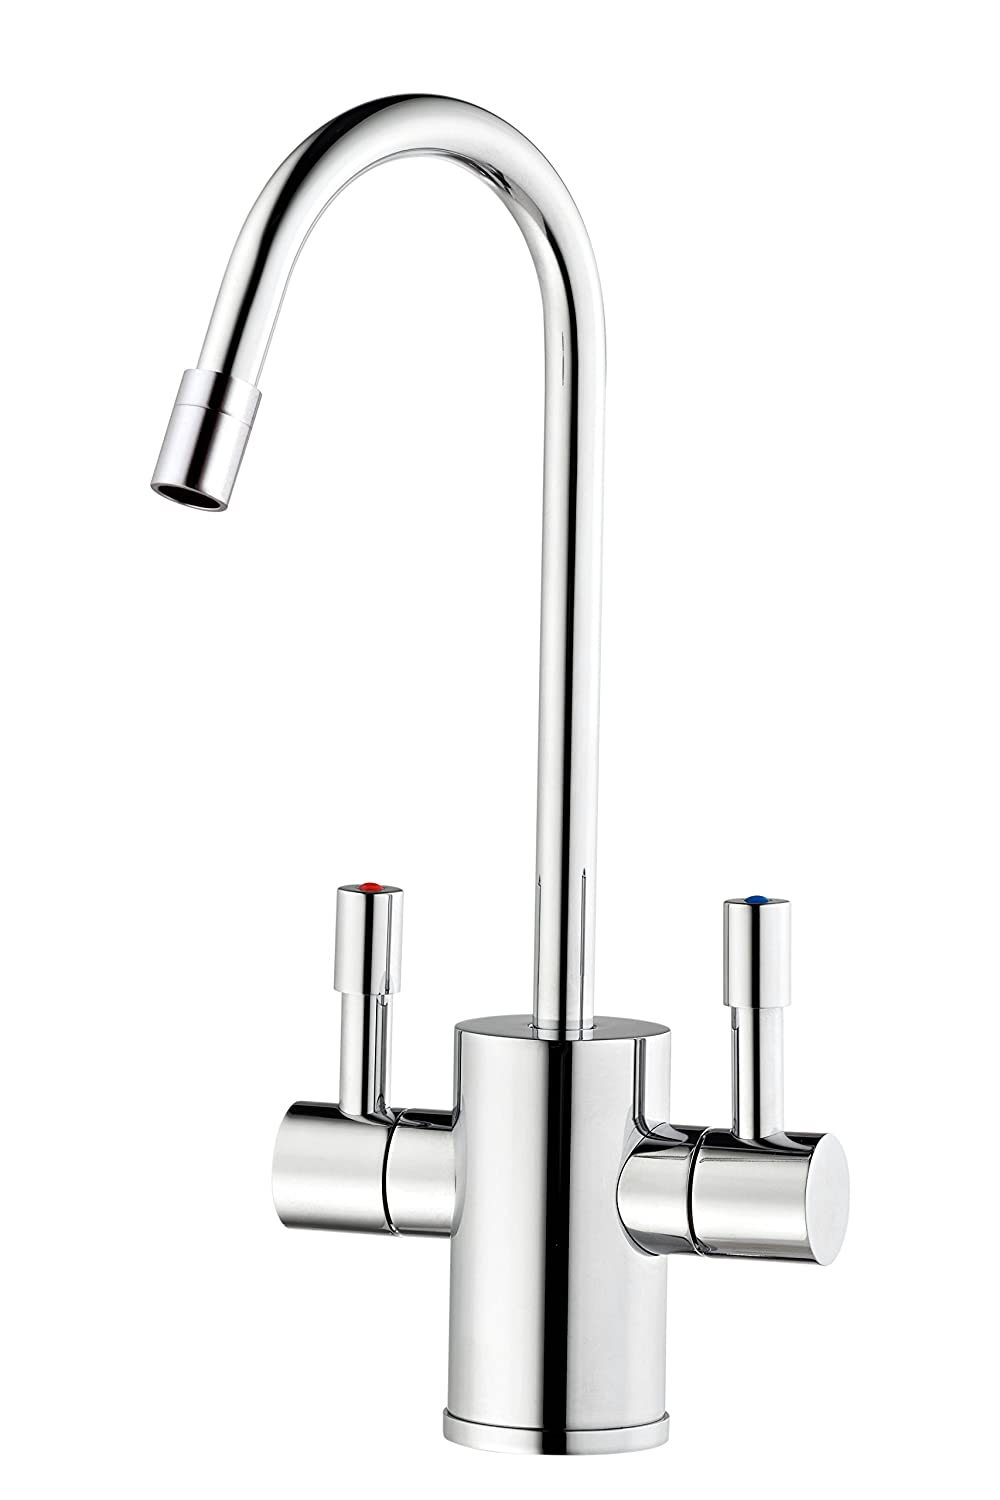 Ready Hot RH-F560-BN Dual Lever Faucet for Hot and Cold Water ...